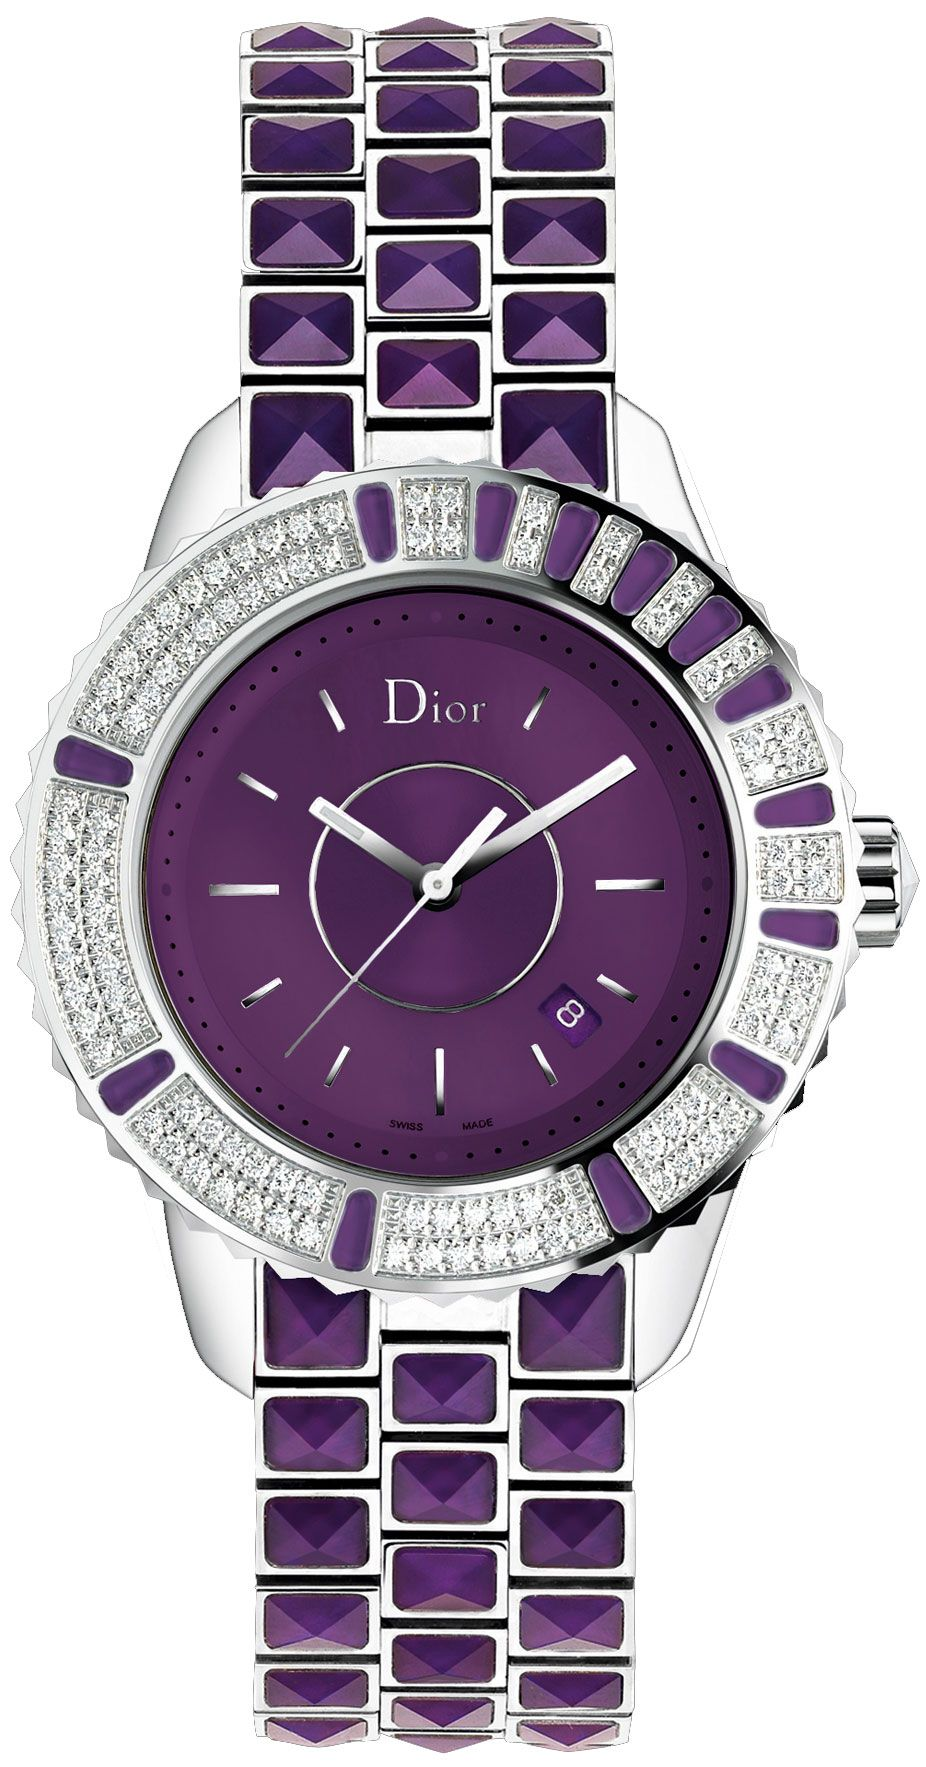 b56e9a6b9d2 Christian Dior Christal Ladies Watch Tudo Roxo